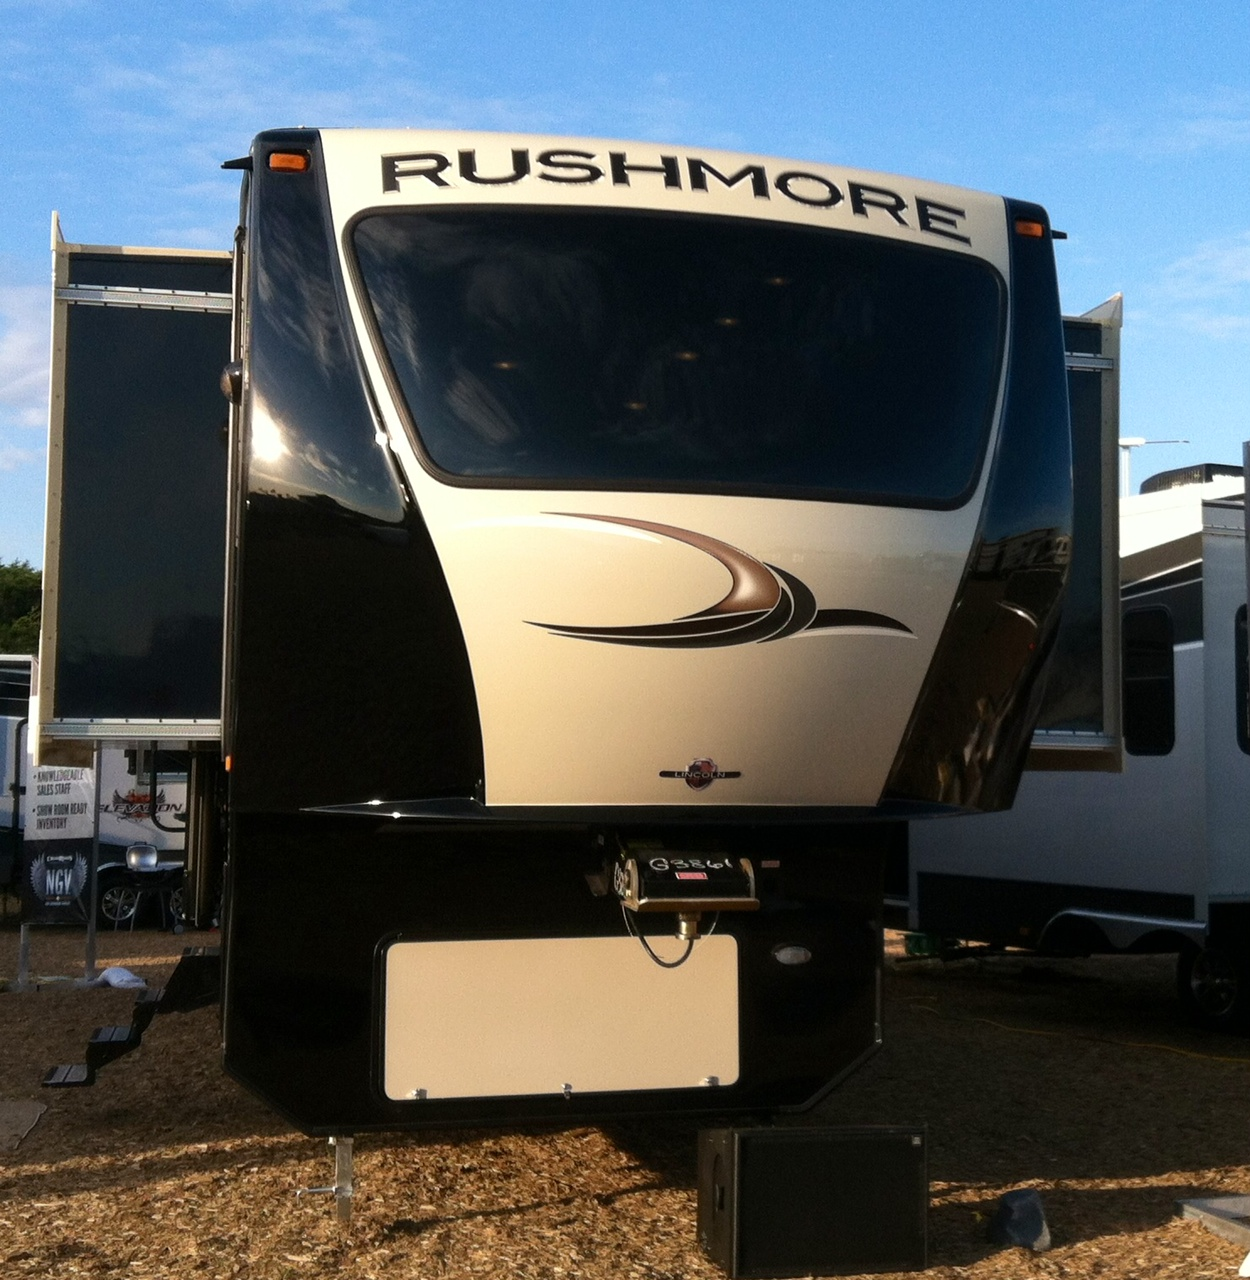 2 Bedroom Fifth Wheel Trailers Bedroom Furniture High